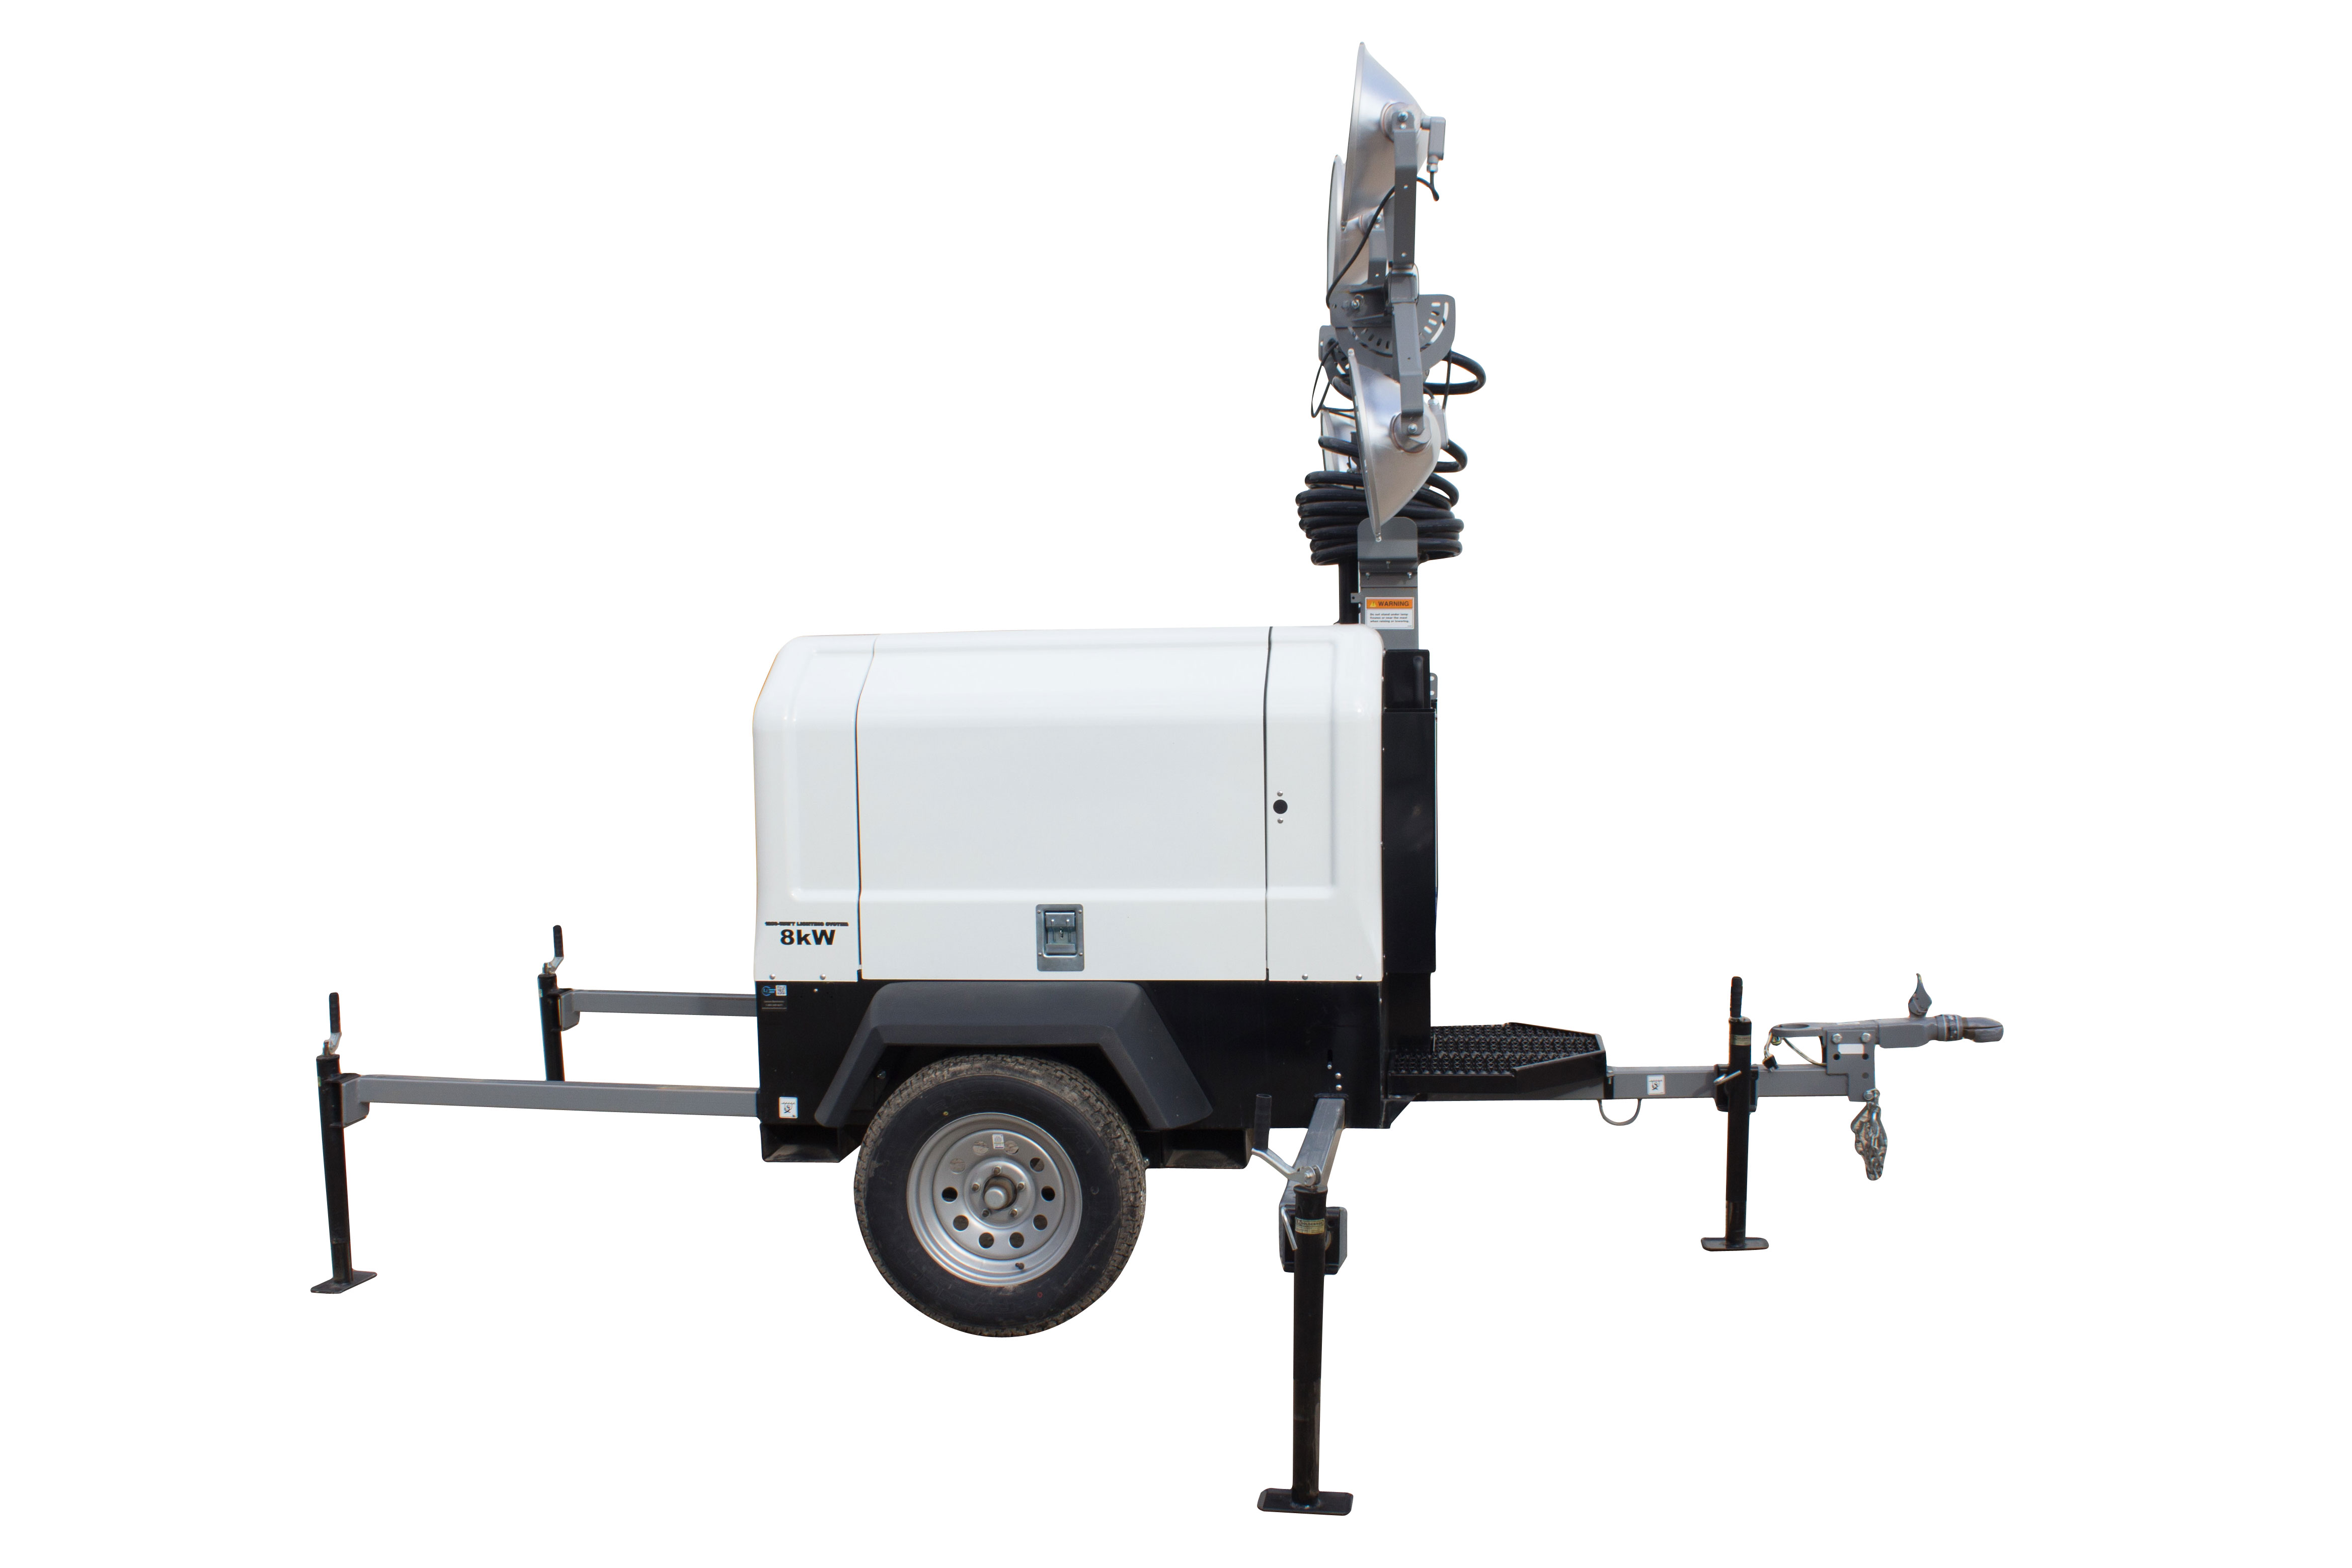 larson electronics releases mobile light tower with diesel. Black Bedroom Furniture Sets. Home Design Ideas